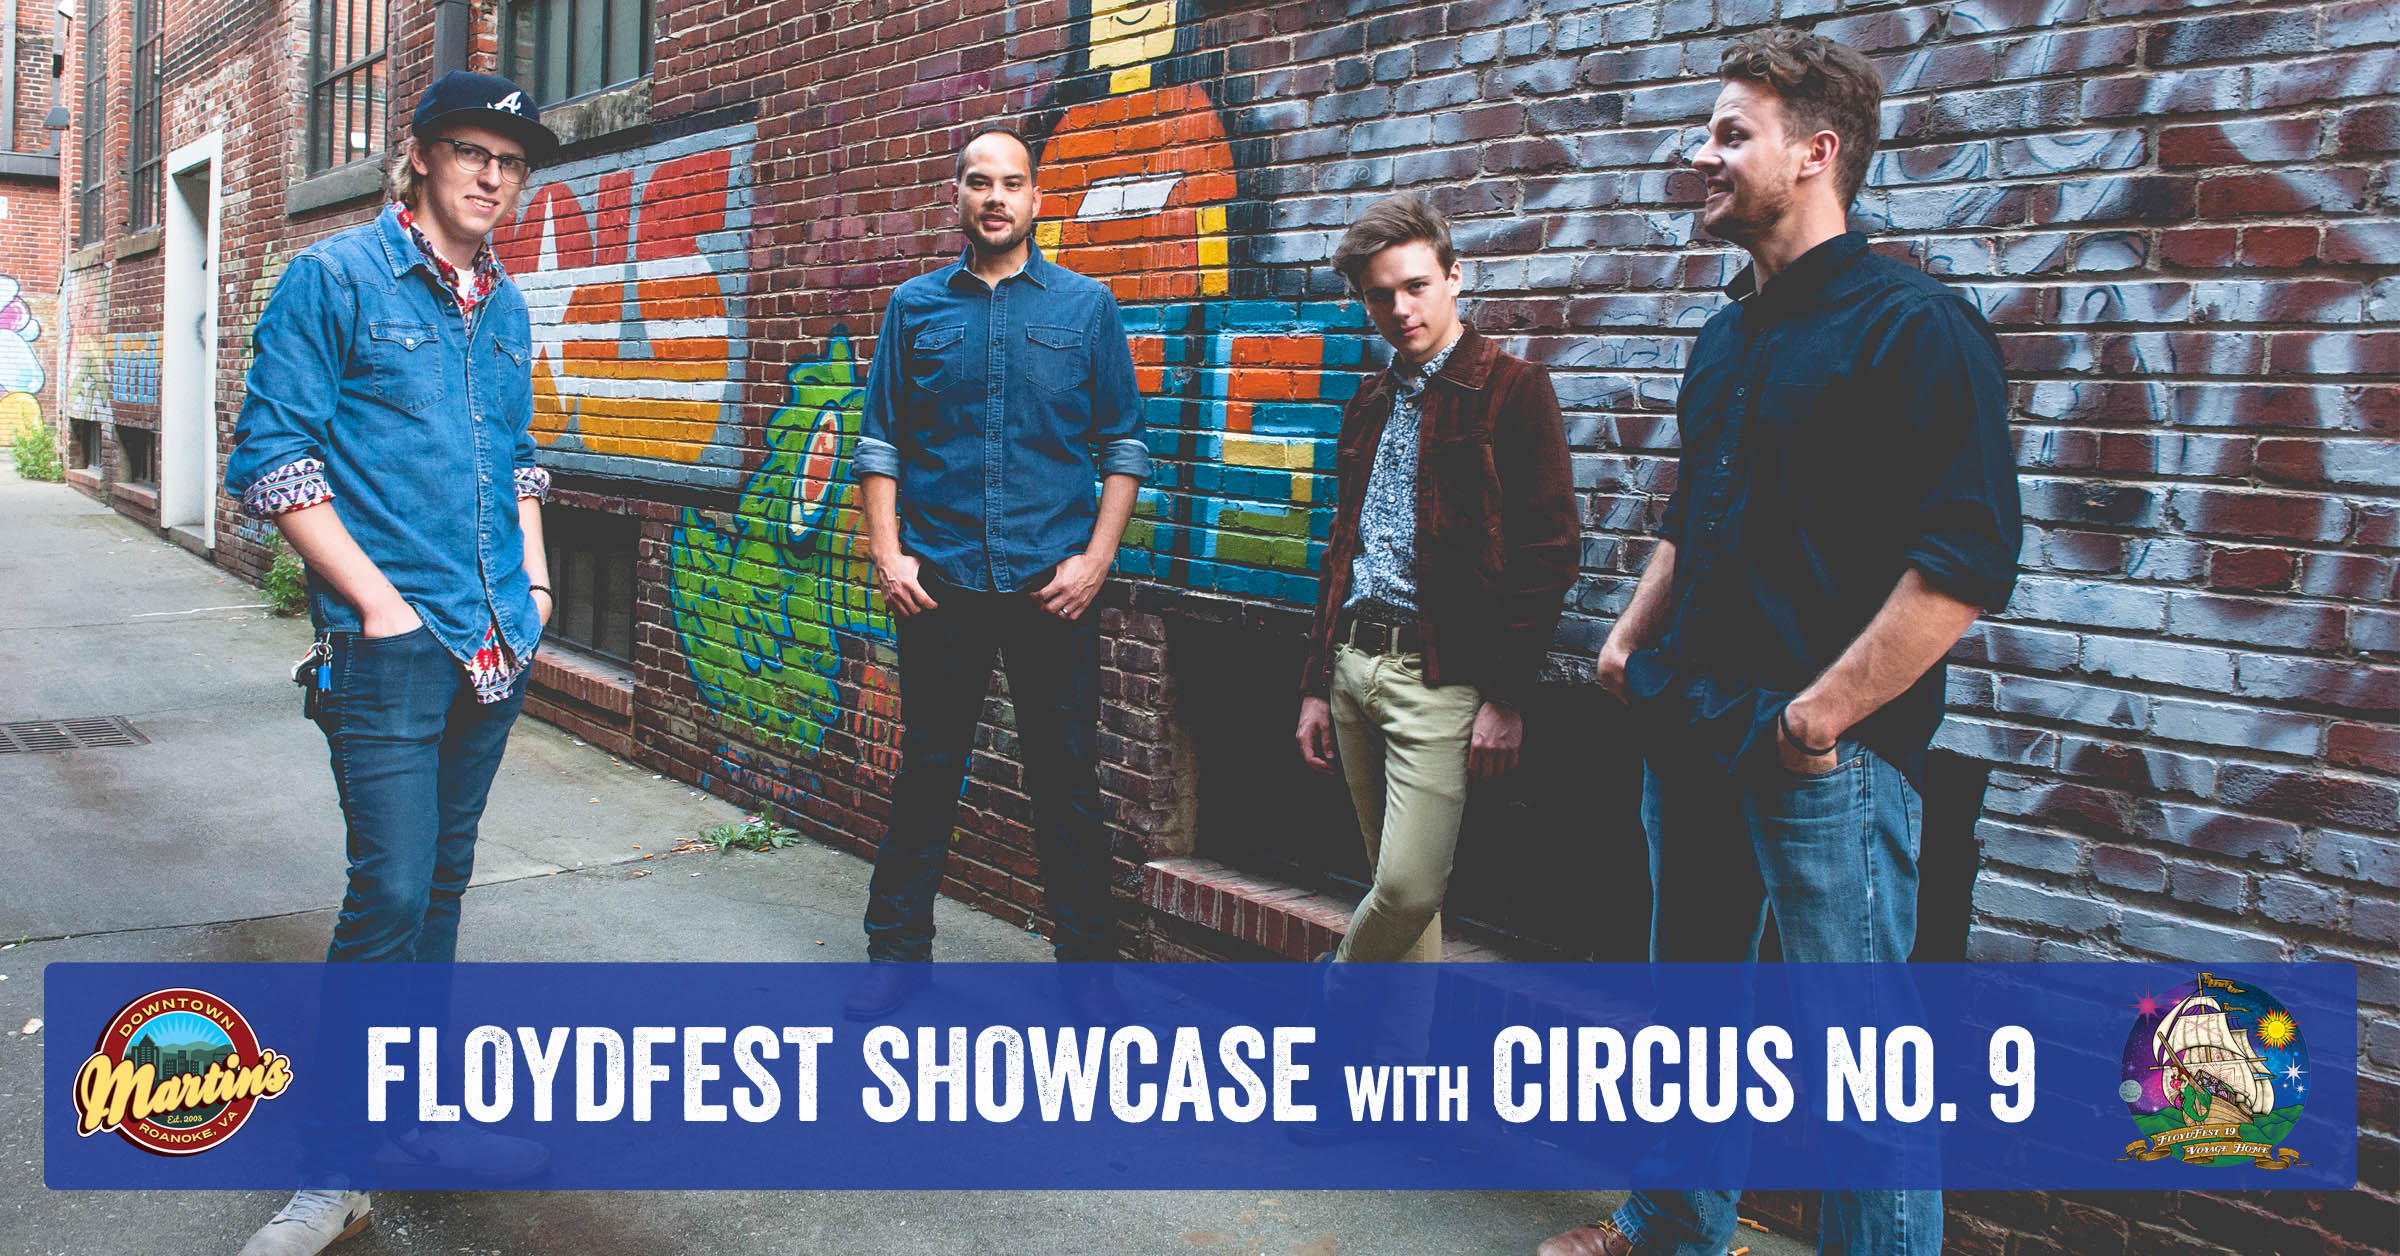 FloydFest Showcase with Circus No. 9 6/13 at 10 p.m. Free Show